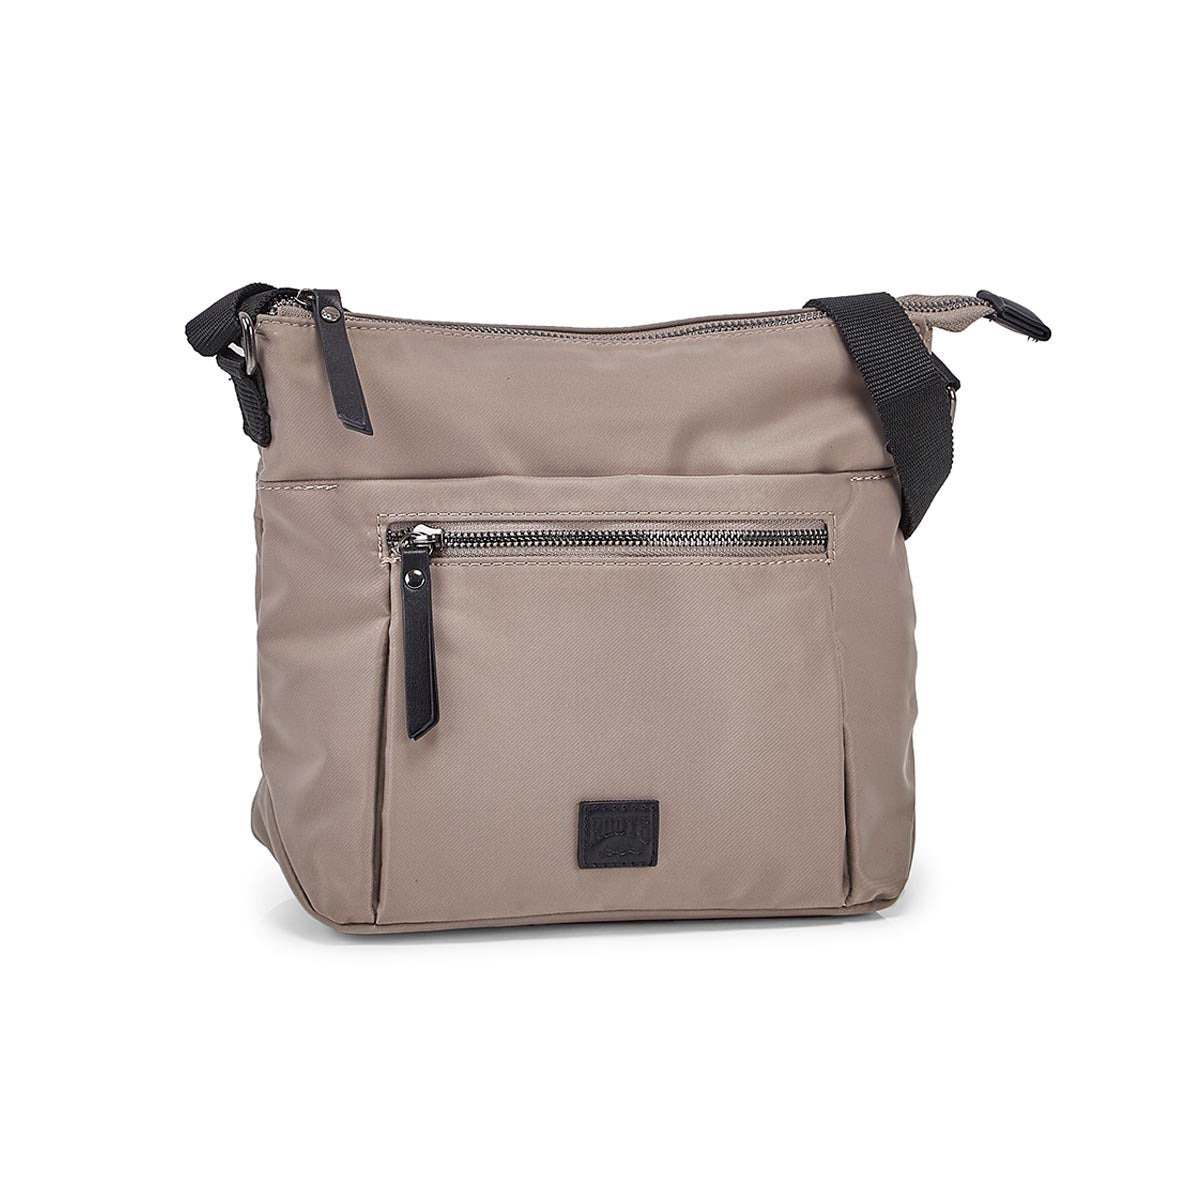 Lds Roots73 taupe n/s crossbody